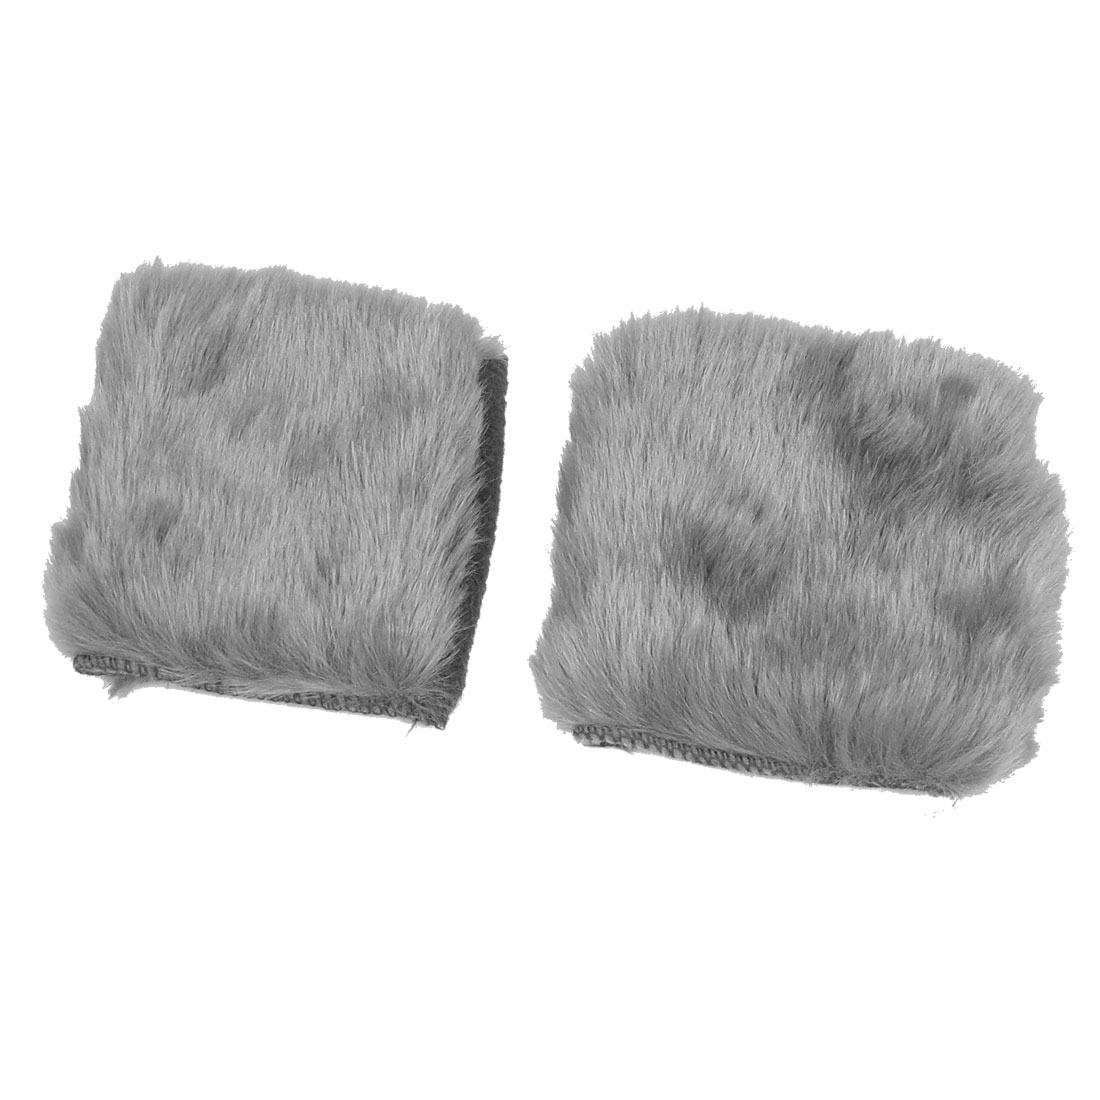 Gray Faux Fur Hand Wrist Warmer Fingerless Gloves for Ladies